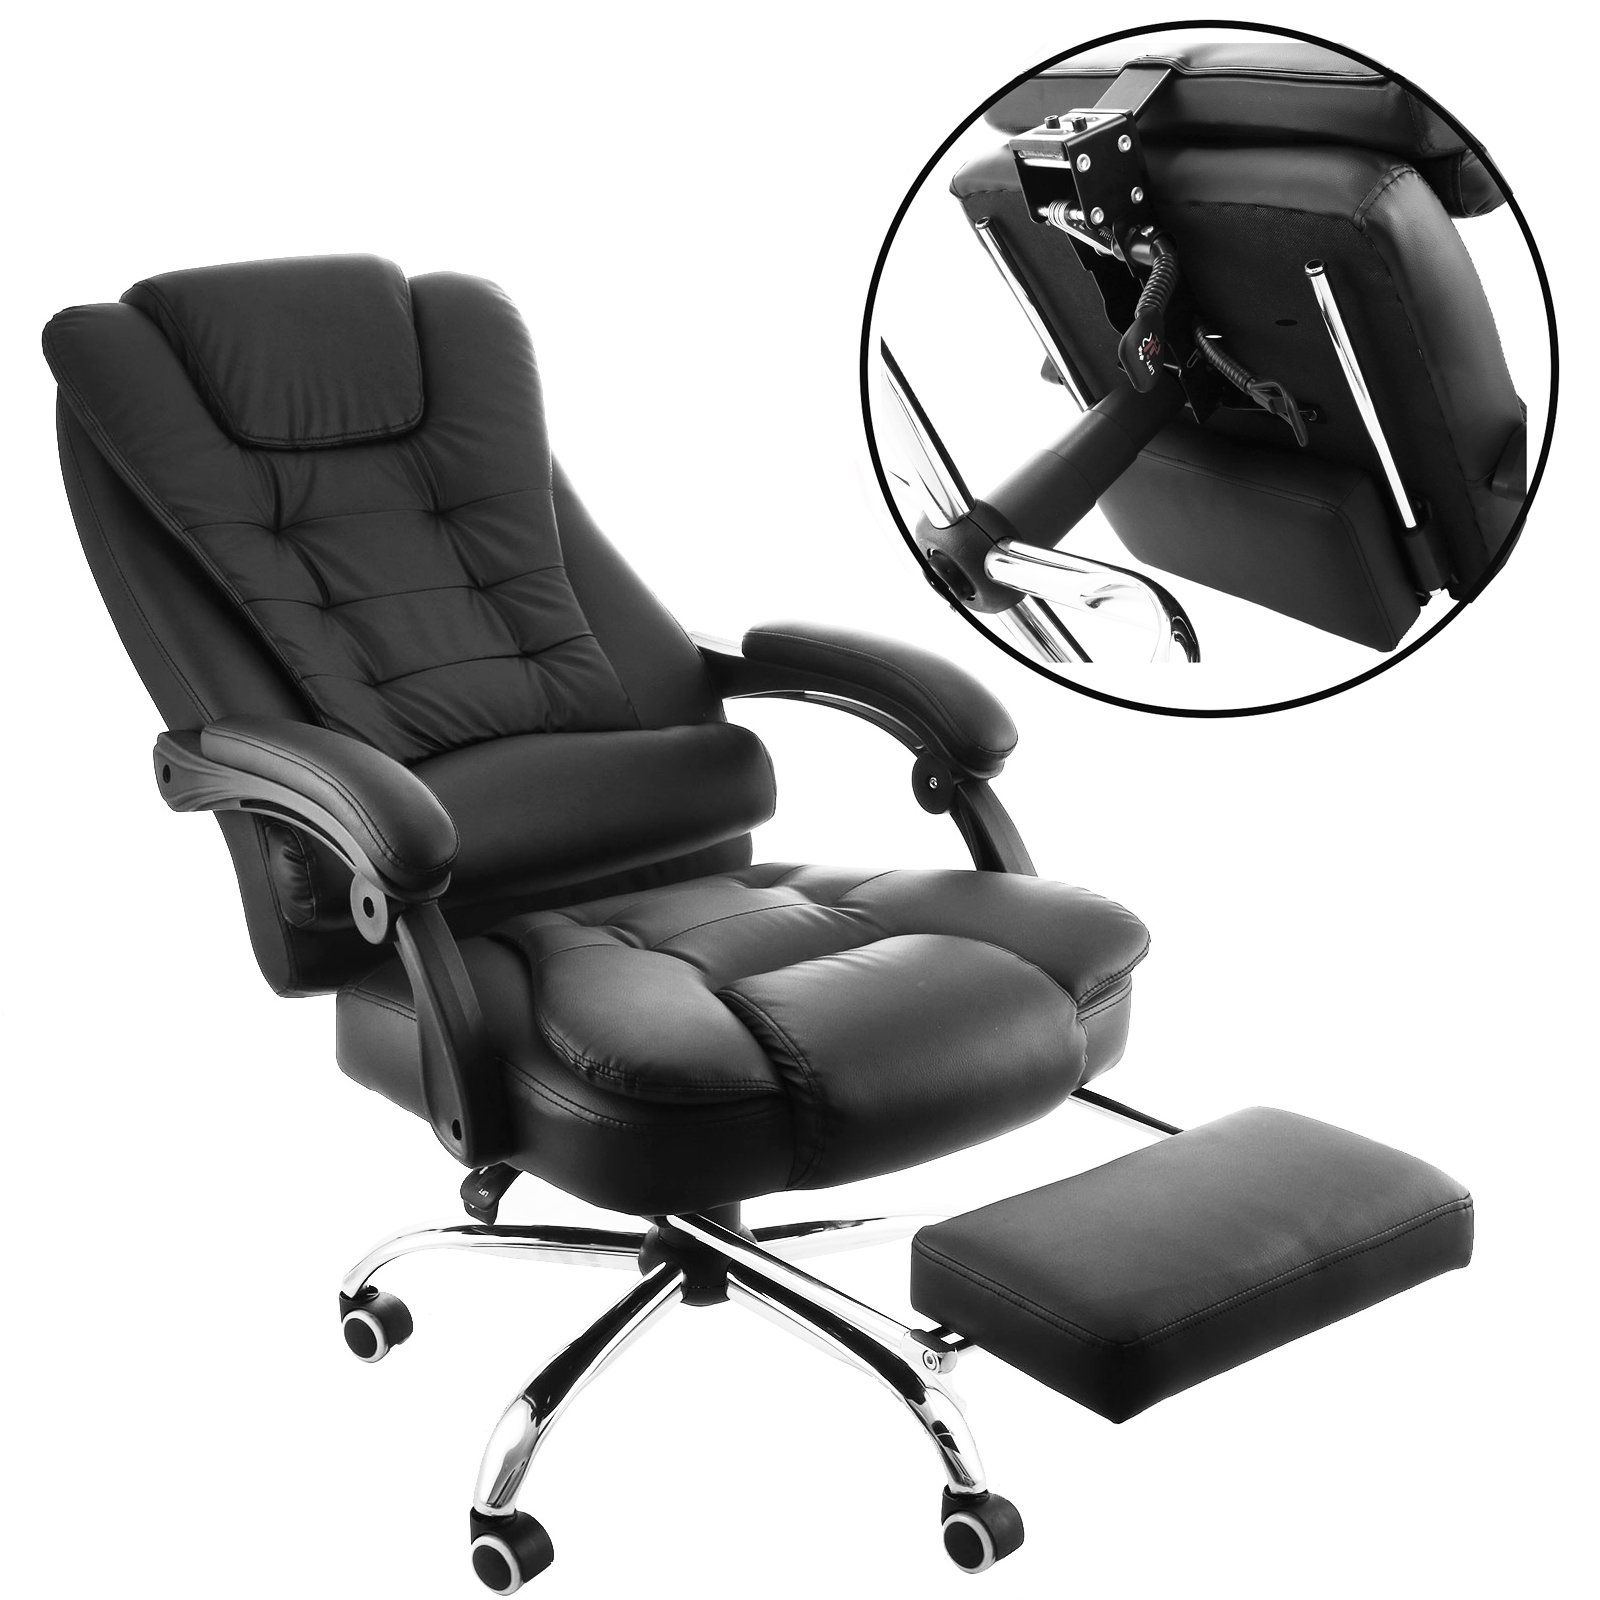 high quality office chairs ergonomic white outdoor rocking chair orangea back pu leather executive 360 degree swivel reclining with footrest black computer desk